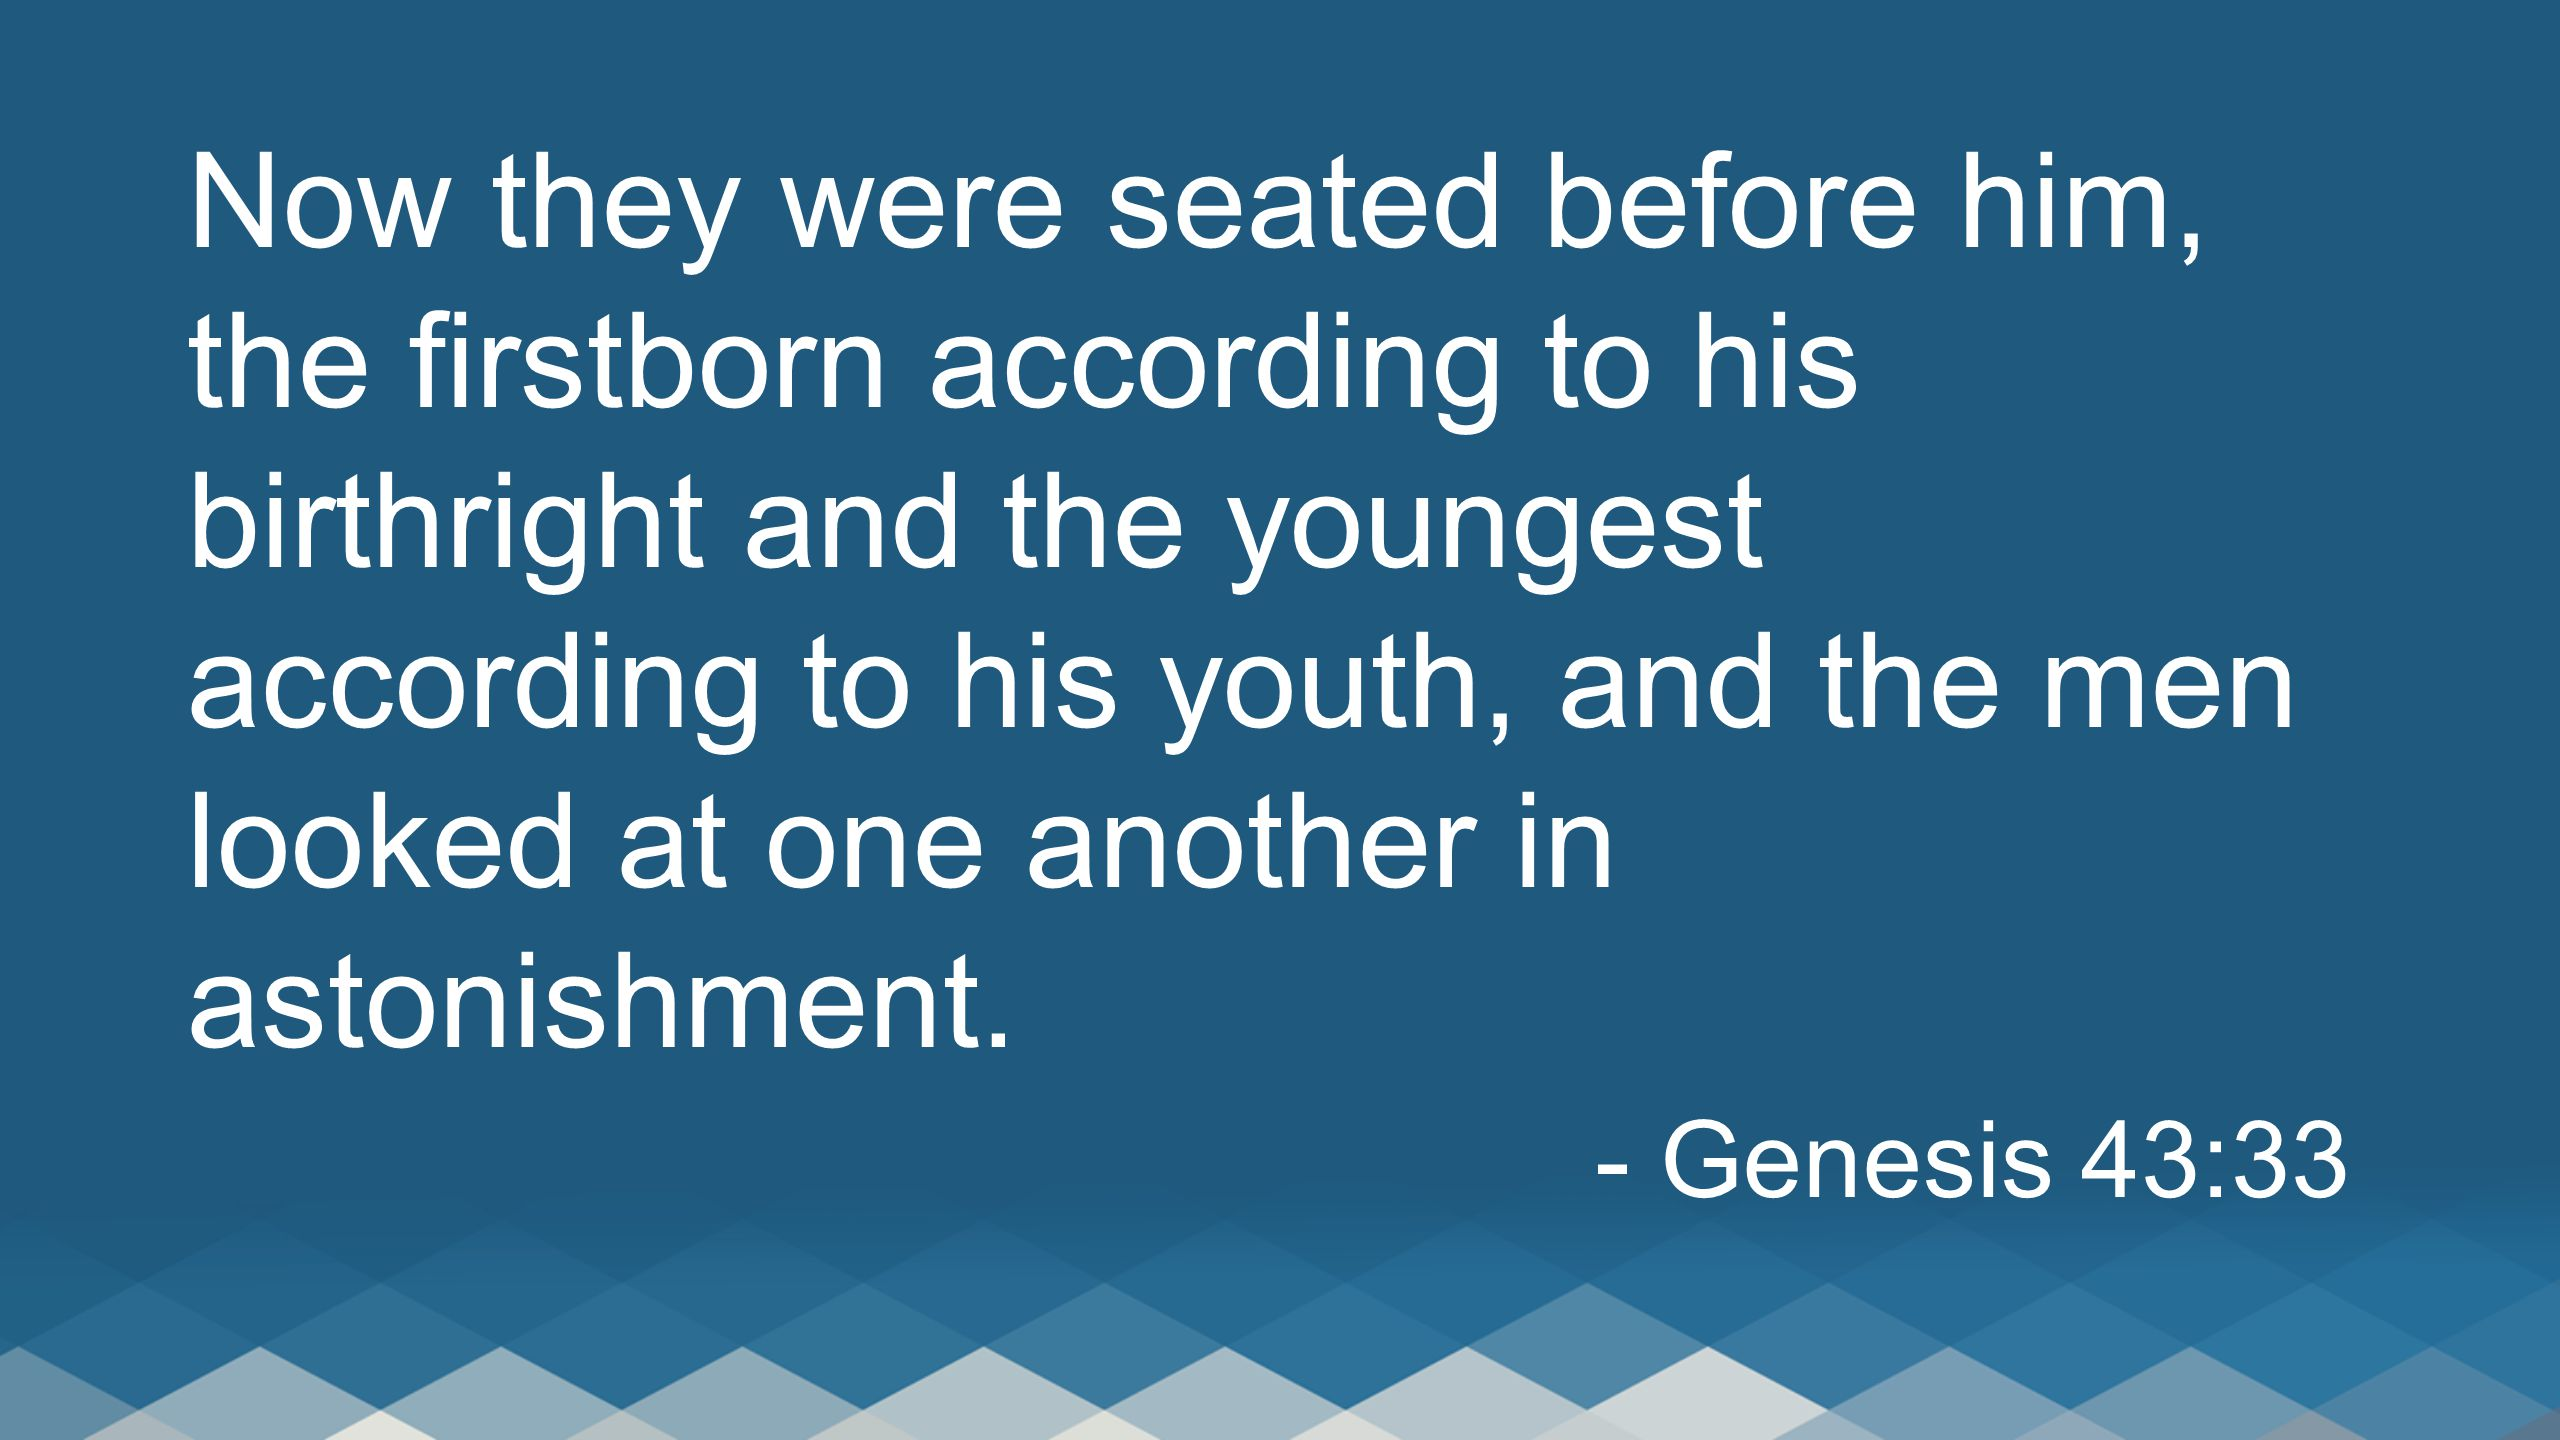 Now they were seated before him, the firstborn according to his birthright and the youngest according to his youth, and the men looked at one another in astonishment.